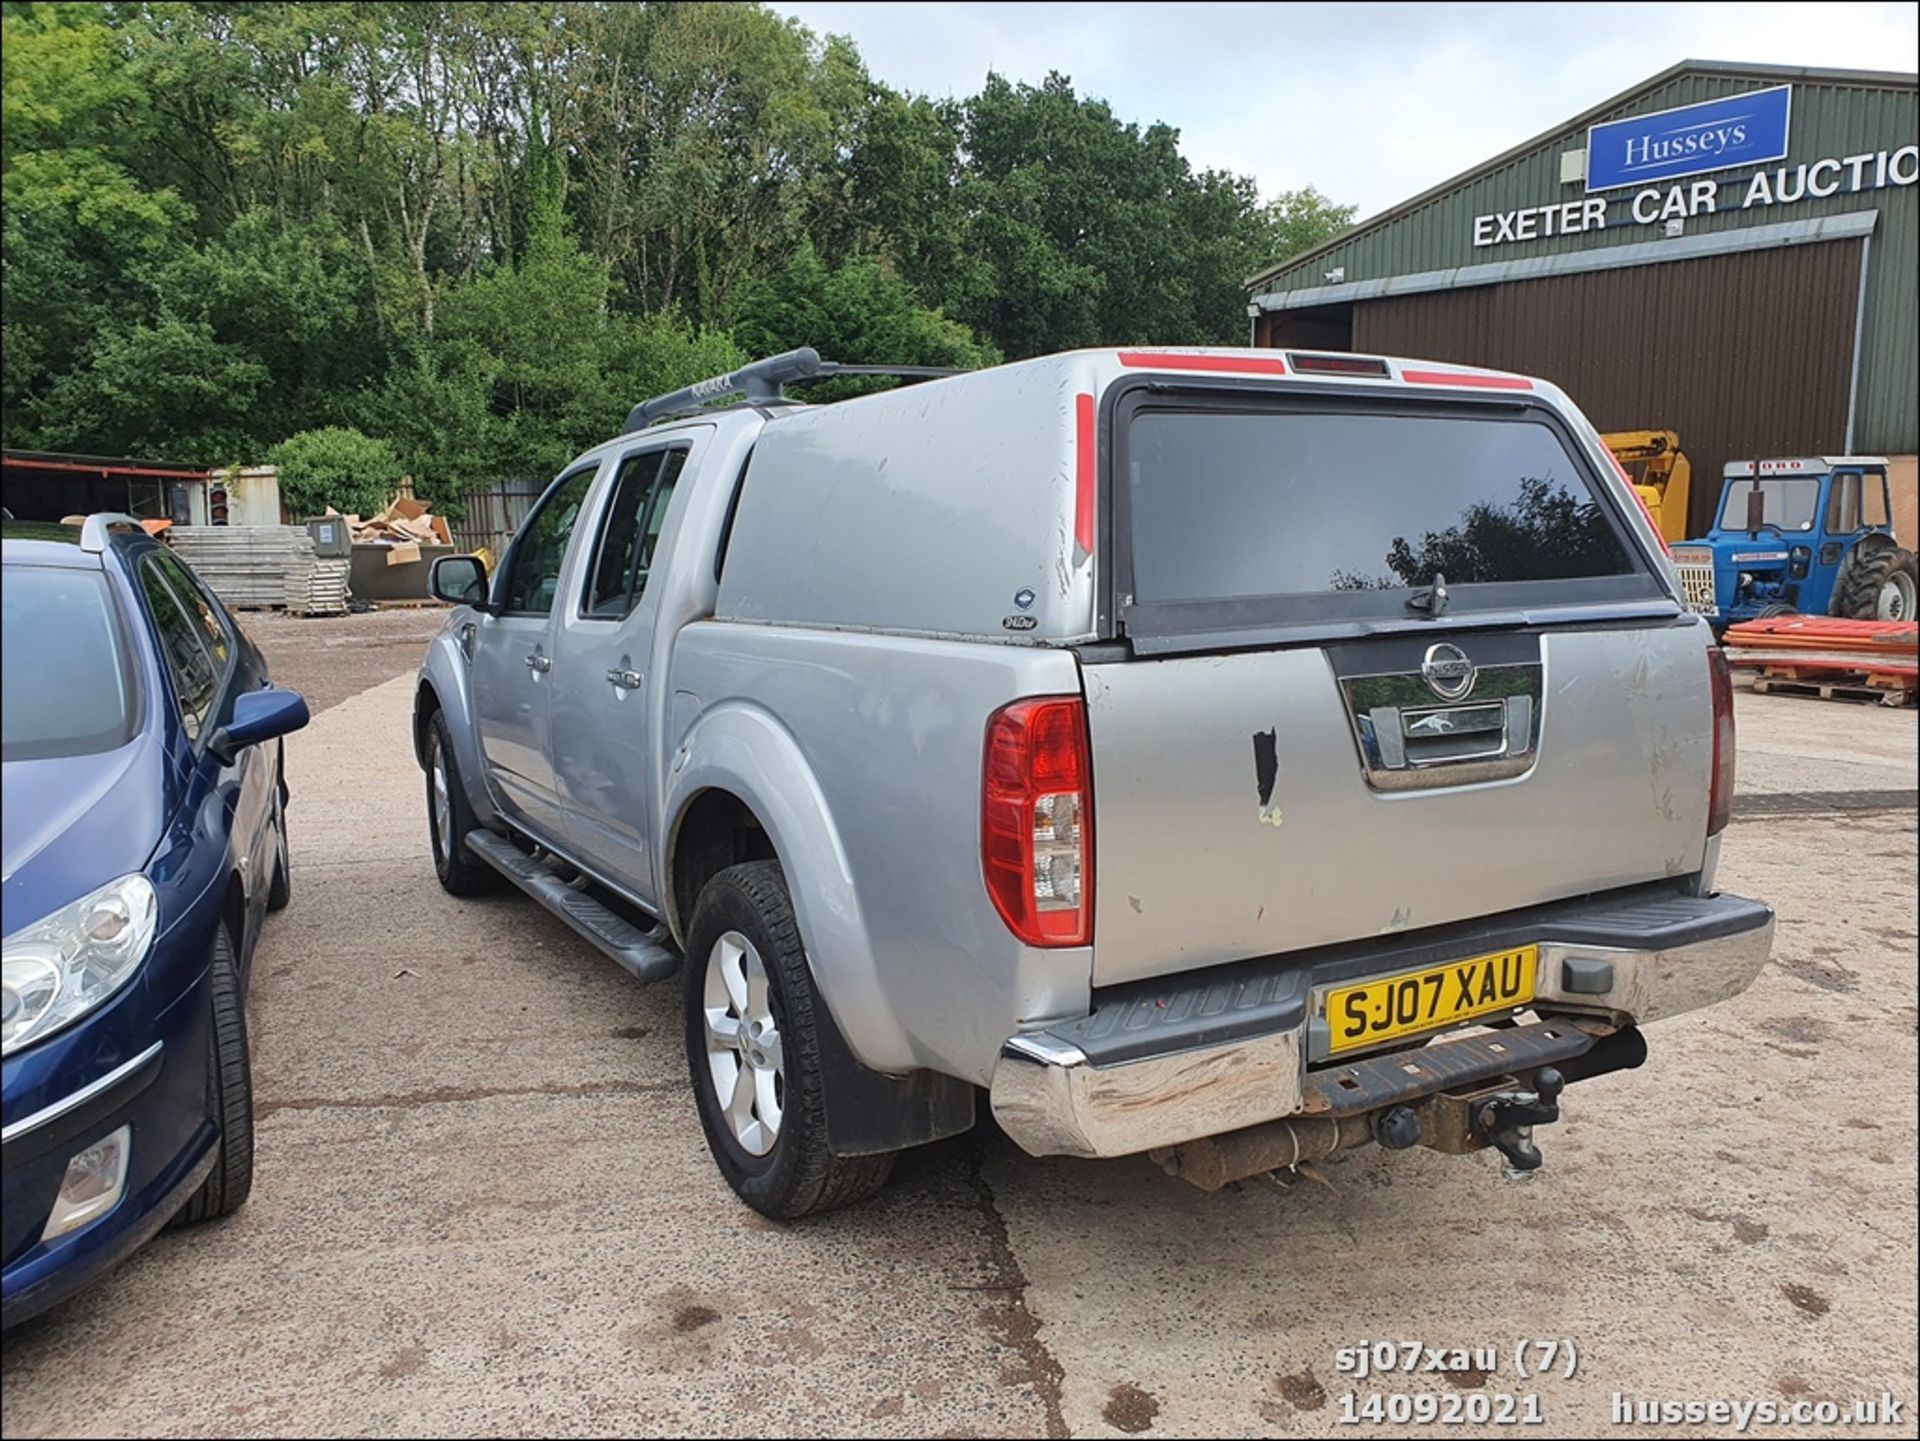 07/07 NISSAN NAVARA D/C OUTLAW DCI - 2488cc 4dr 4x4 (Silver, 166k) - Image 7 of 15